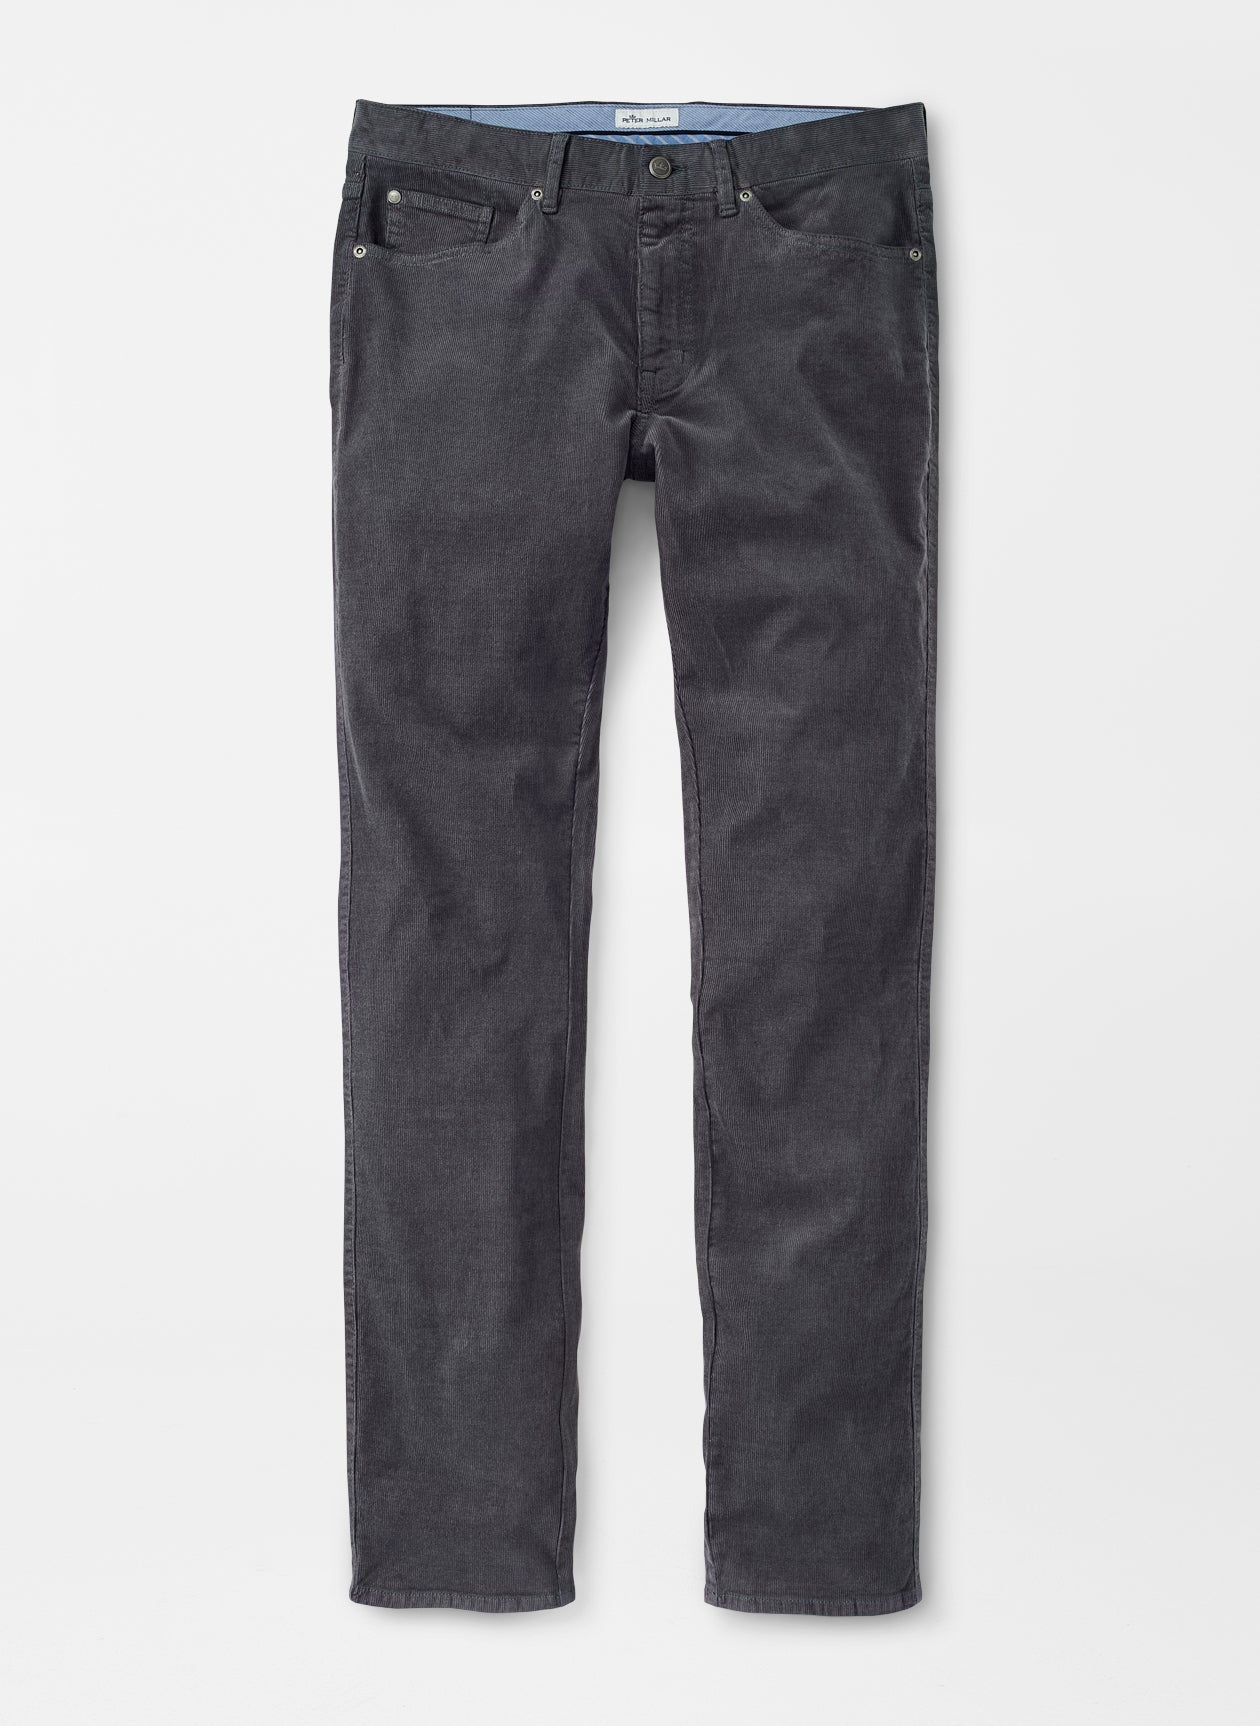 Superior Soft Corduroy Five-Pocket Pant - Smoke